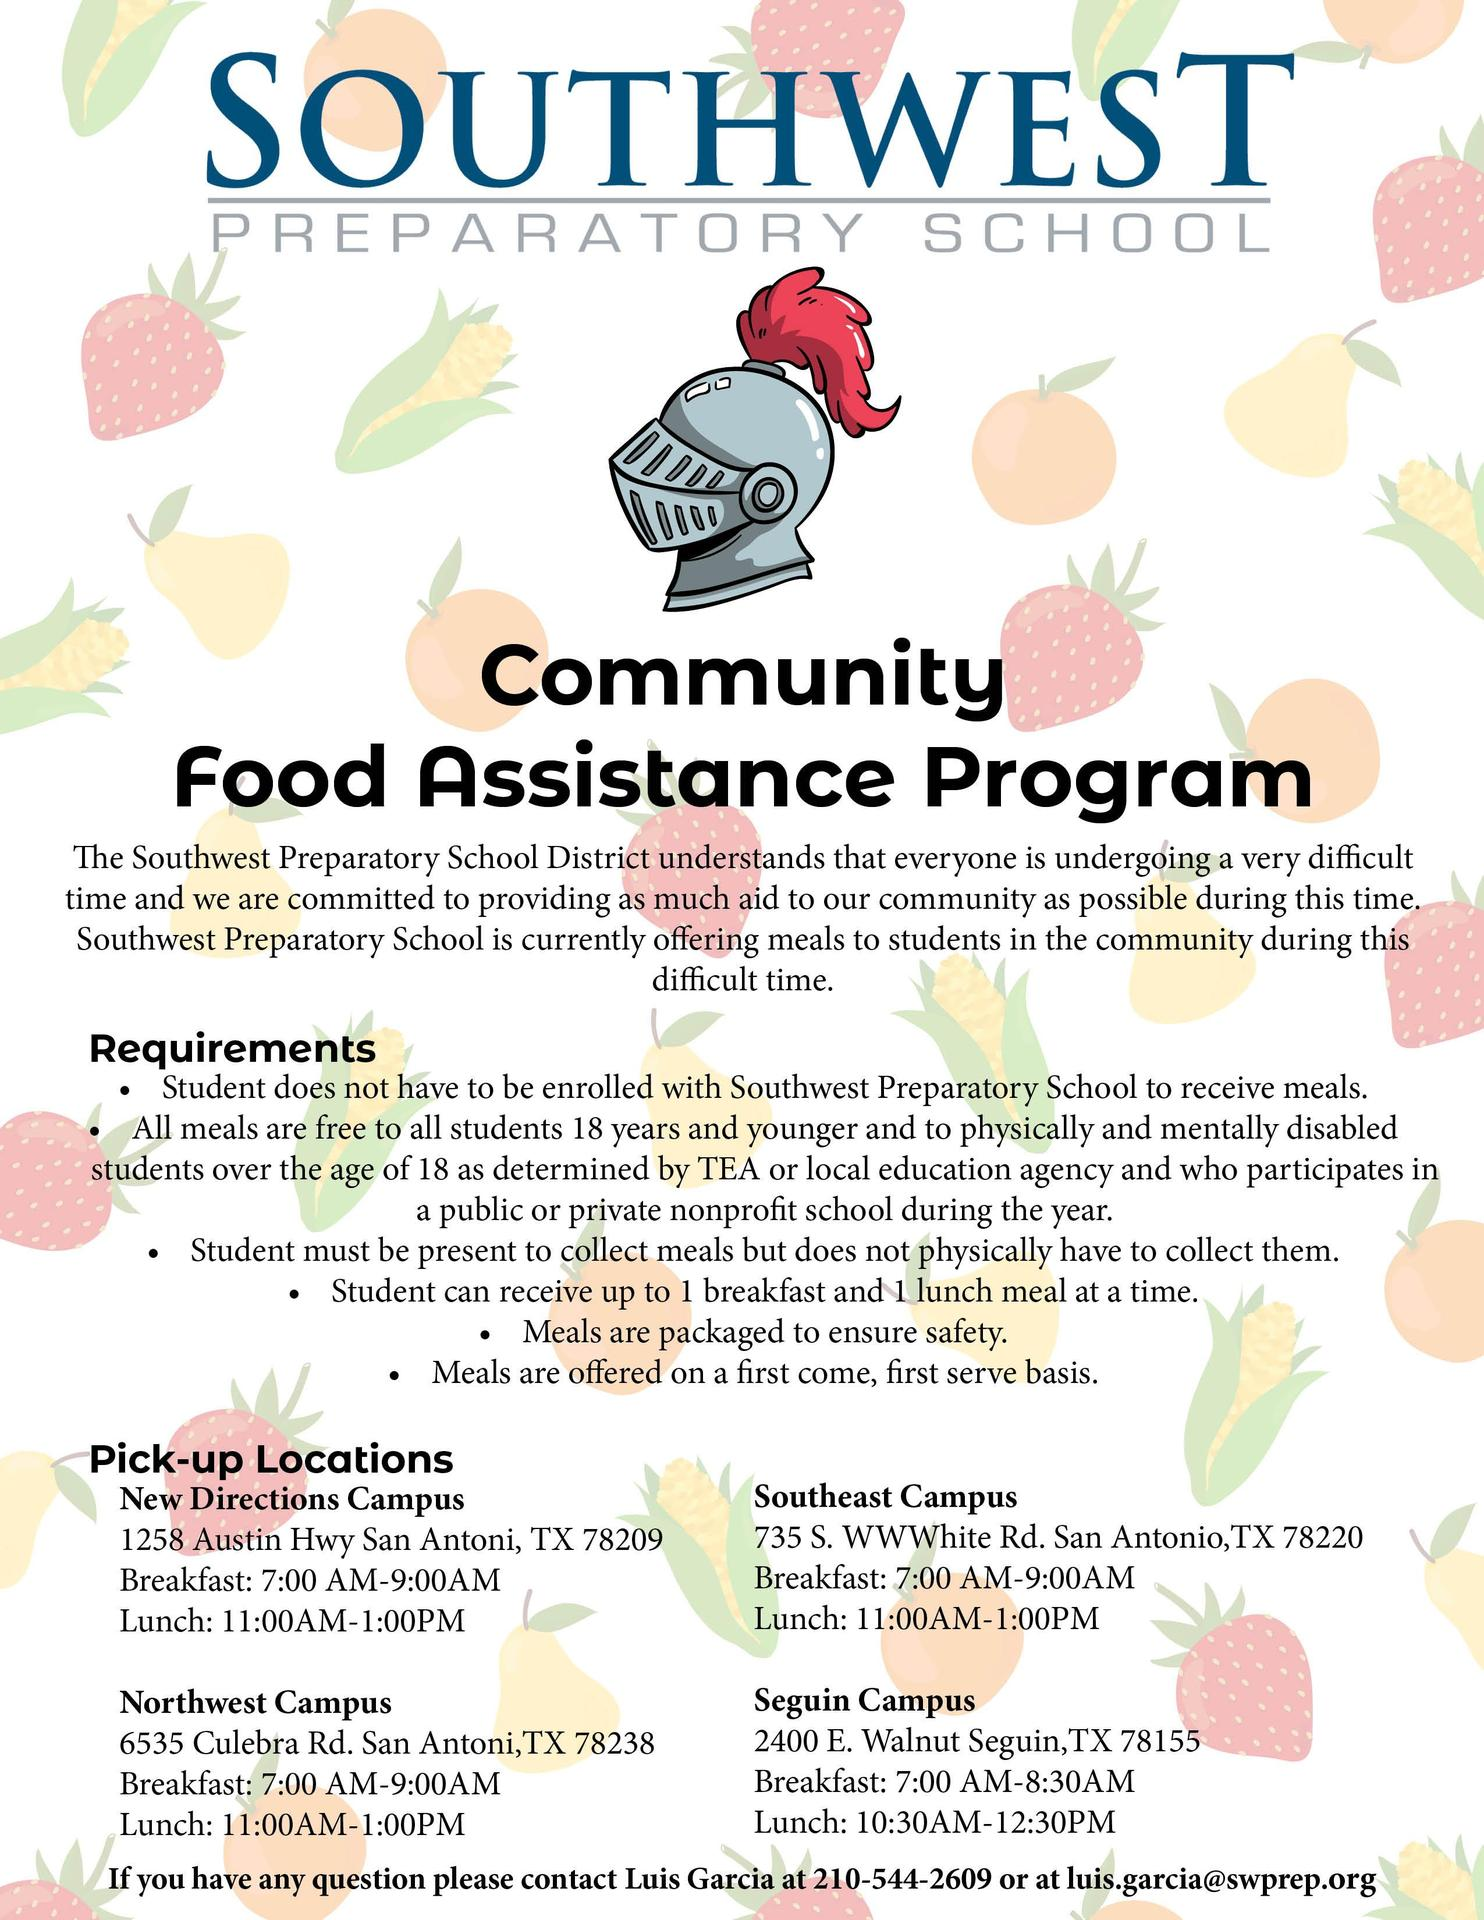 Free Meals To Students In The Community